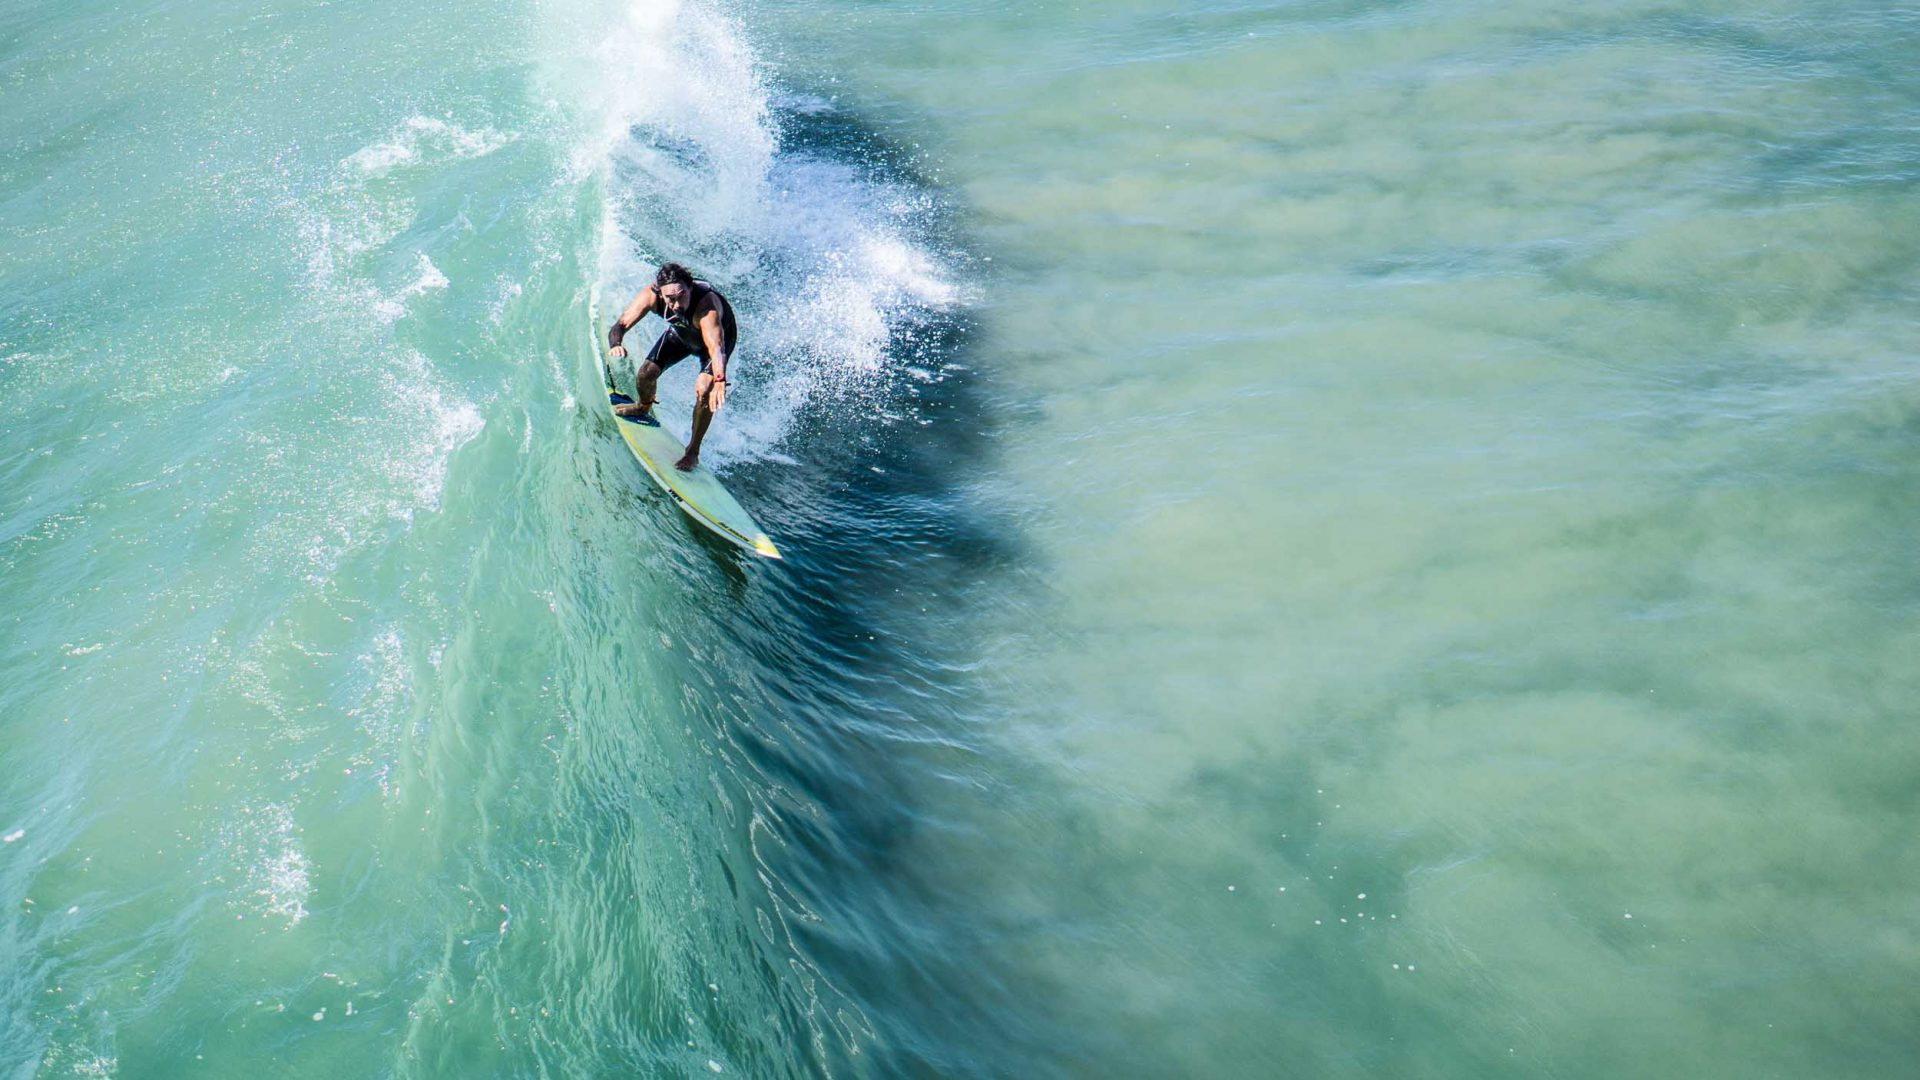 Surfing is one of the draw cards of Cape Town, South Africa.